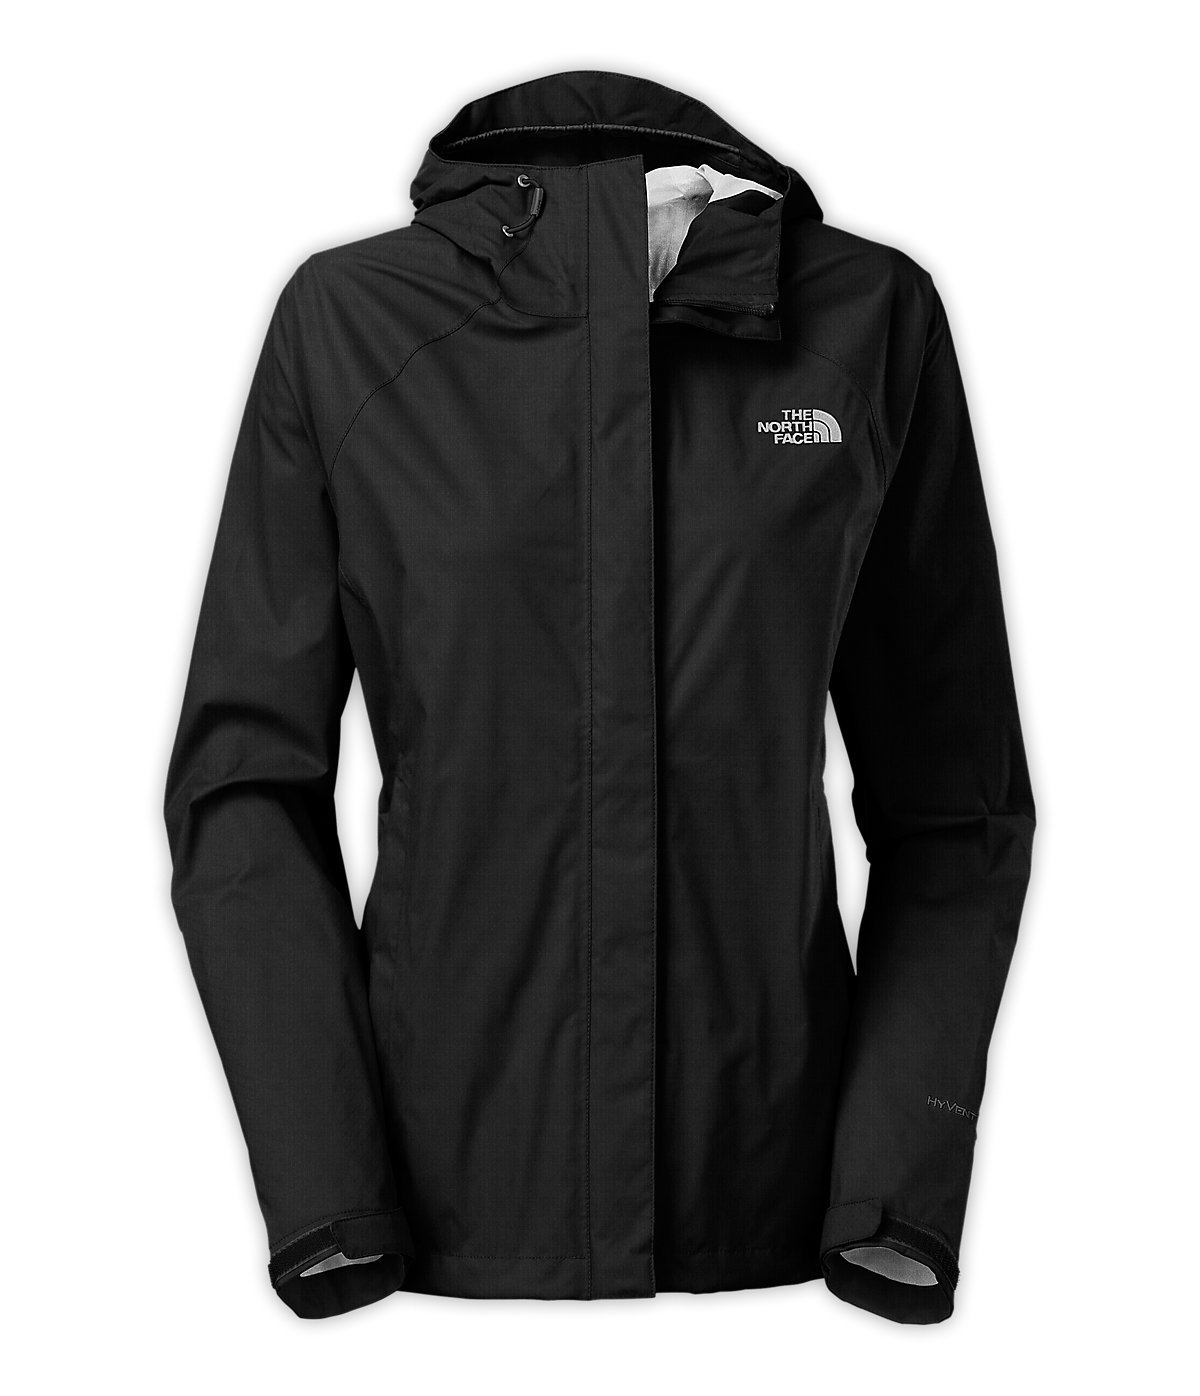 Super Lightweight North Face Rain Jacket (Women) Image